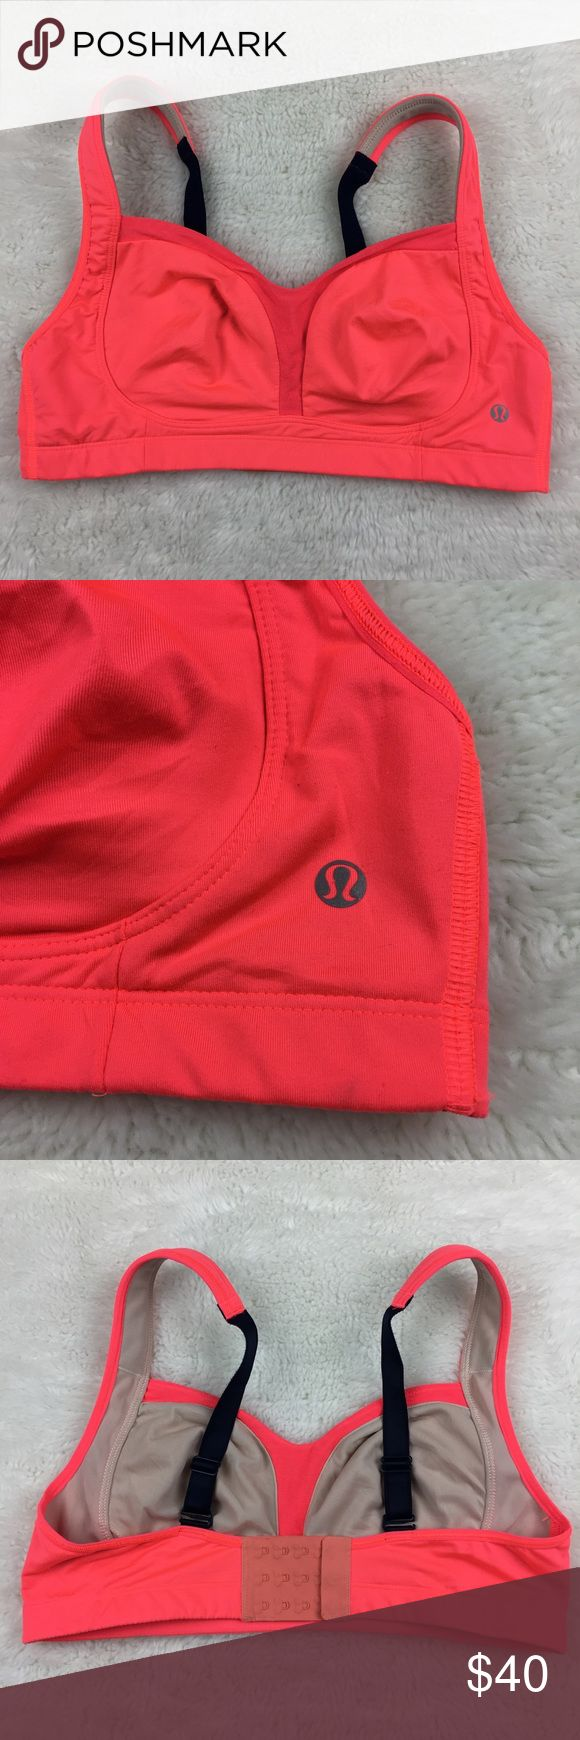 Lululemon Ta Ta Tamer Orange Sports Bra size 36C Pre-owned authentic Lululemon Ta Ta Tamer Neon Orange Sports Bra size 36C. Excellent condition. Please look at pictures for better reference. Happy Shopping! lululemon athletica Intimates & Sleepwear Bras